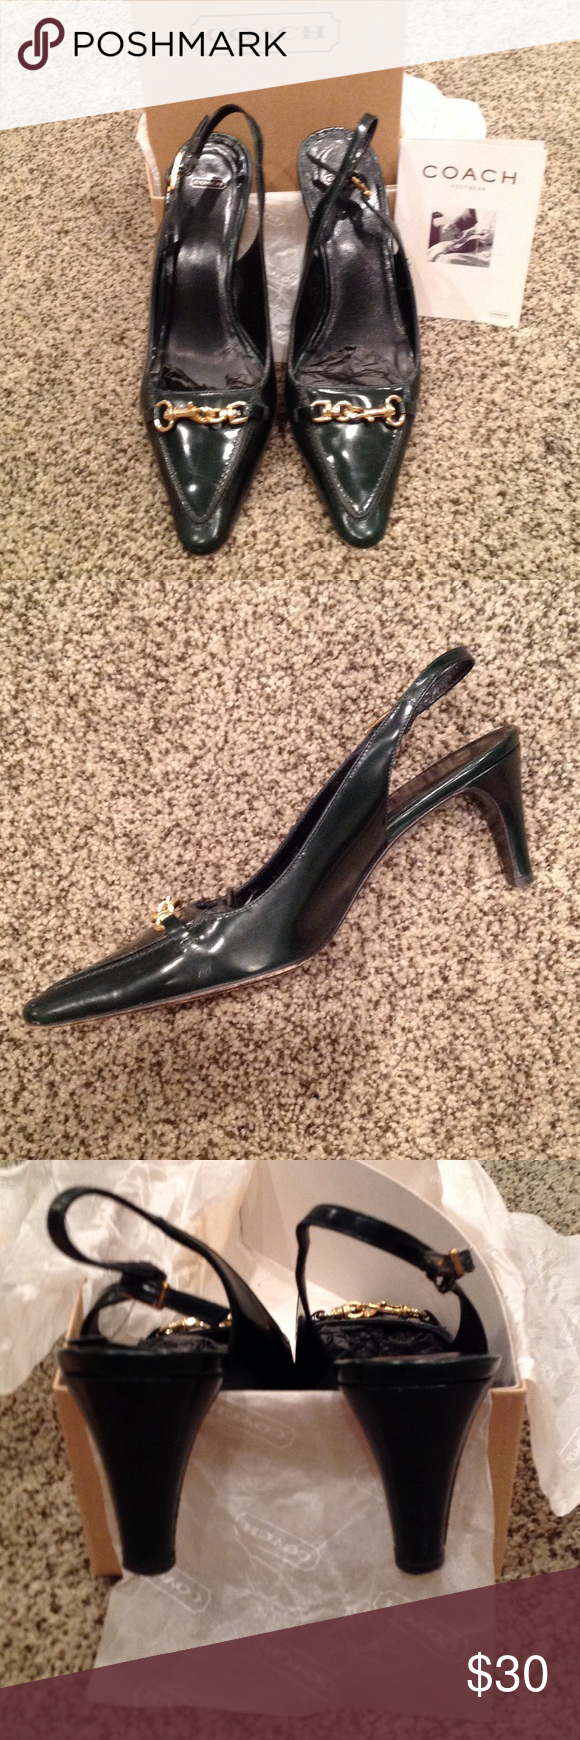 Coach sling back heels Pointed toe, 3 inch heel. Gold